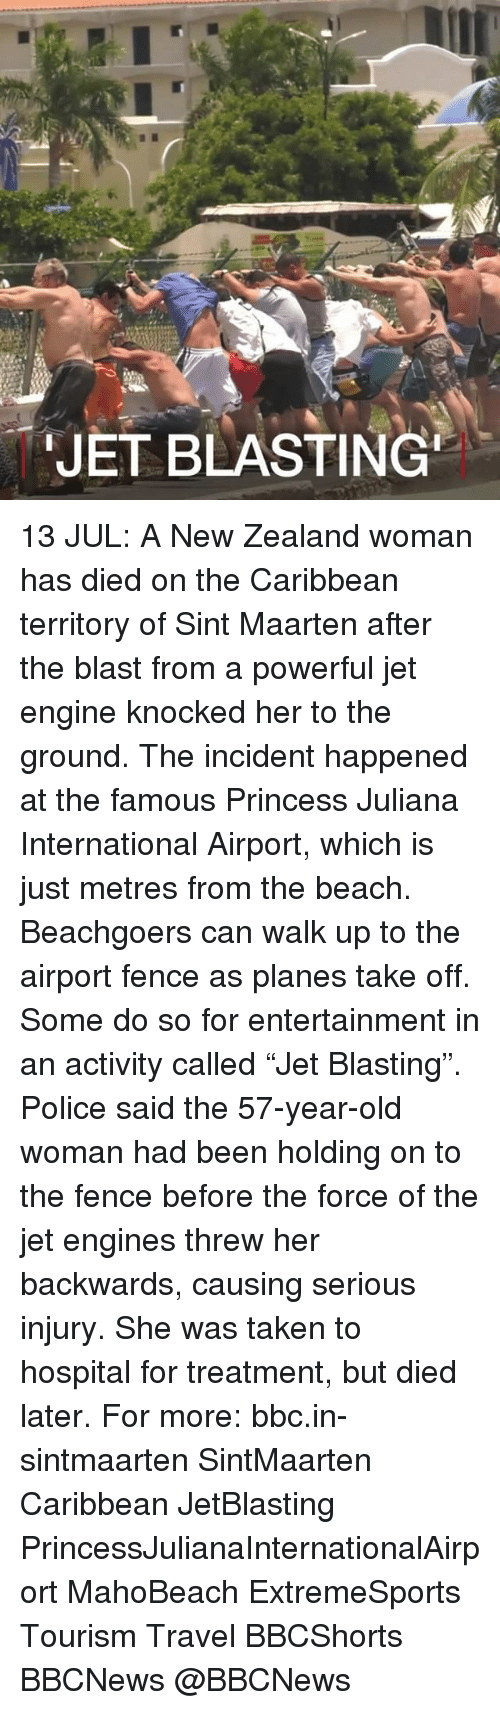 """Dieded: JET BLASTING 13 JUL: A New Zealand woman has died on the Caribbean territory of Sint Maarten after the blast from a powerful jet engine knocked her to the ground. The incident happened at the famous Princess Juliana International Airport, which is just metres from the beach. Beachgoers can walk up to the airport fence as planes take off. Some do so for entertainment in an activity called """"Jet Blasting"""". Police said the 57-year-old woman had been holding on to the fence before the force of the jet engines threw her backwards, causing serious injury. She was taken to hospital for treatment, but died later. For more: bbc.in-sintmaarten SintMaarten Caribbean JetBlasting PrincessJulianaInternationalAirport MahoBeach ExtremeSports Tourism Travel BBCShorts BBCNews @BBCNews"""